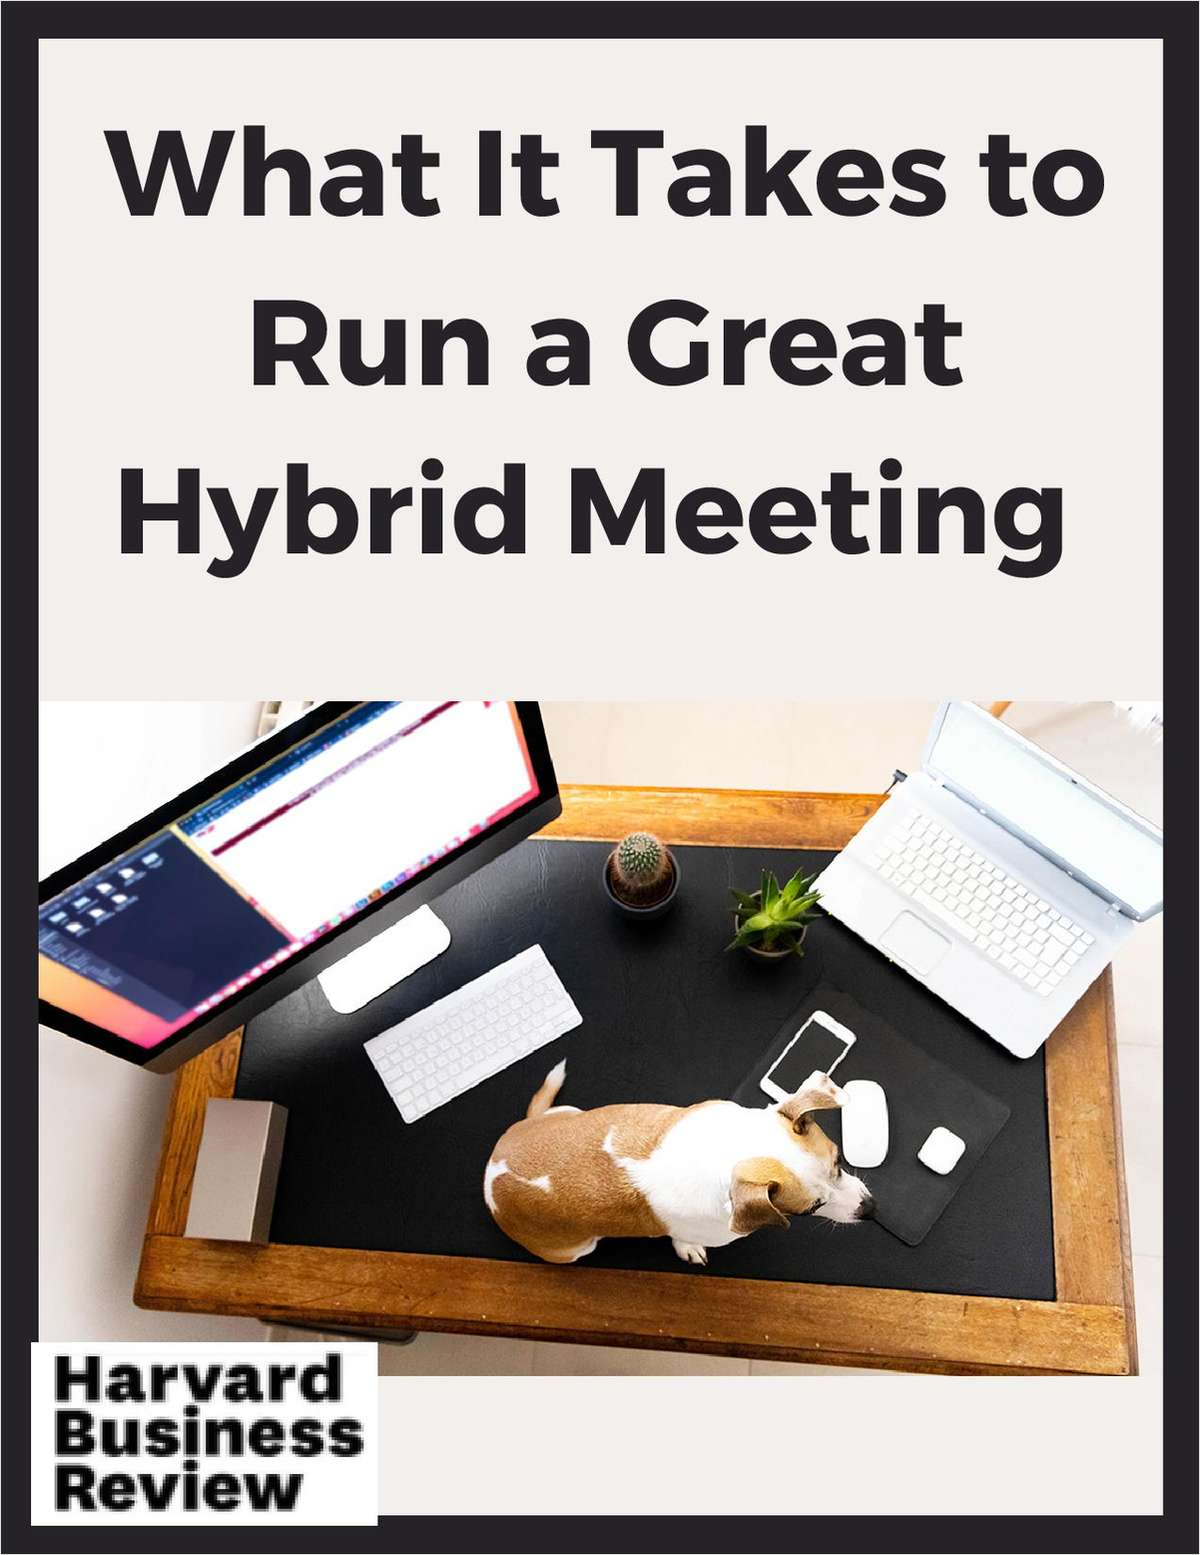 What It Takes to Run a Great Hybrid Meeting